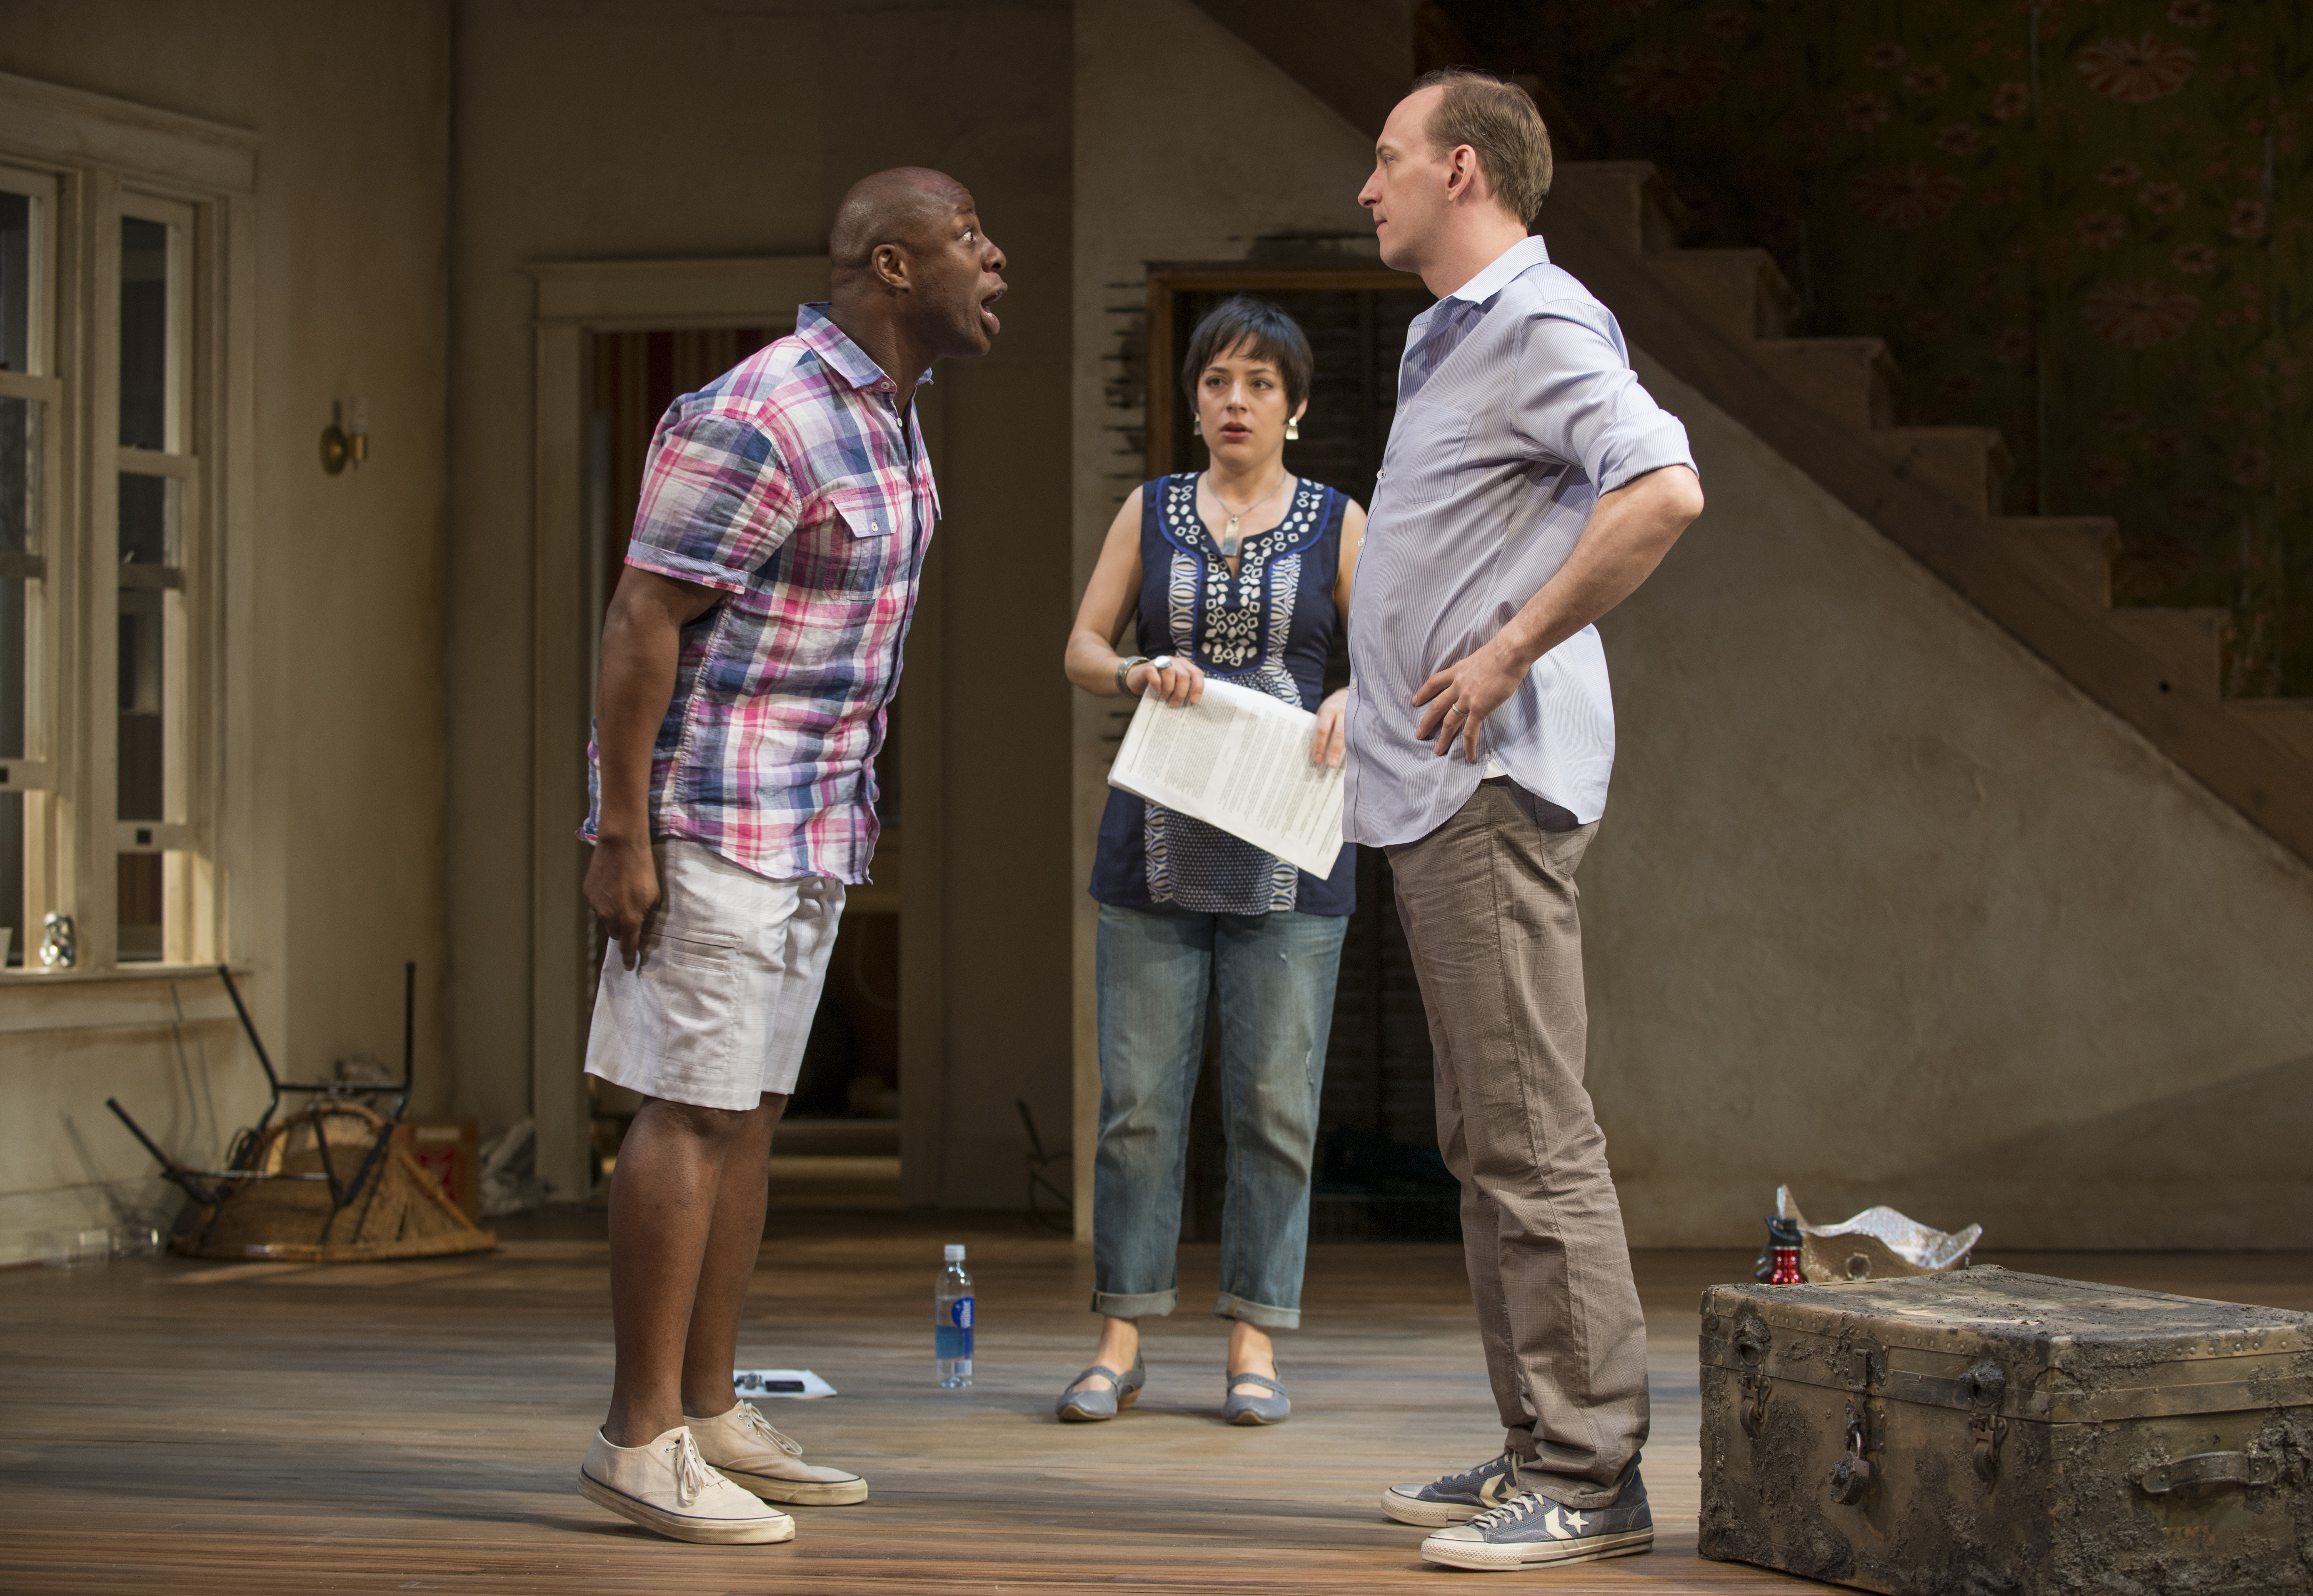 Ansa Akyea, Emily Gunyou Halaas, and Jim Lichtscheidl in Clybourne Park. Photo by Michael Brosilow, courtesy Guthrie Theater.